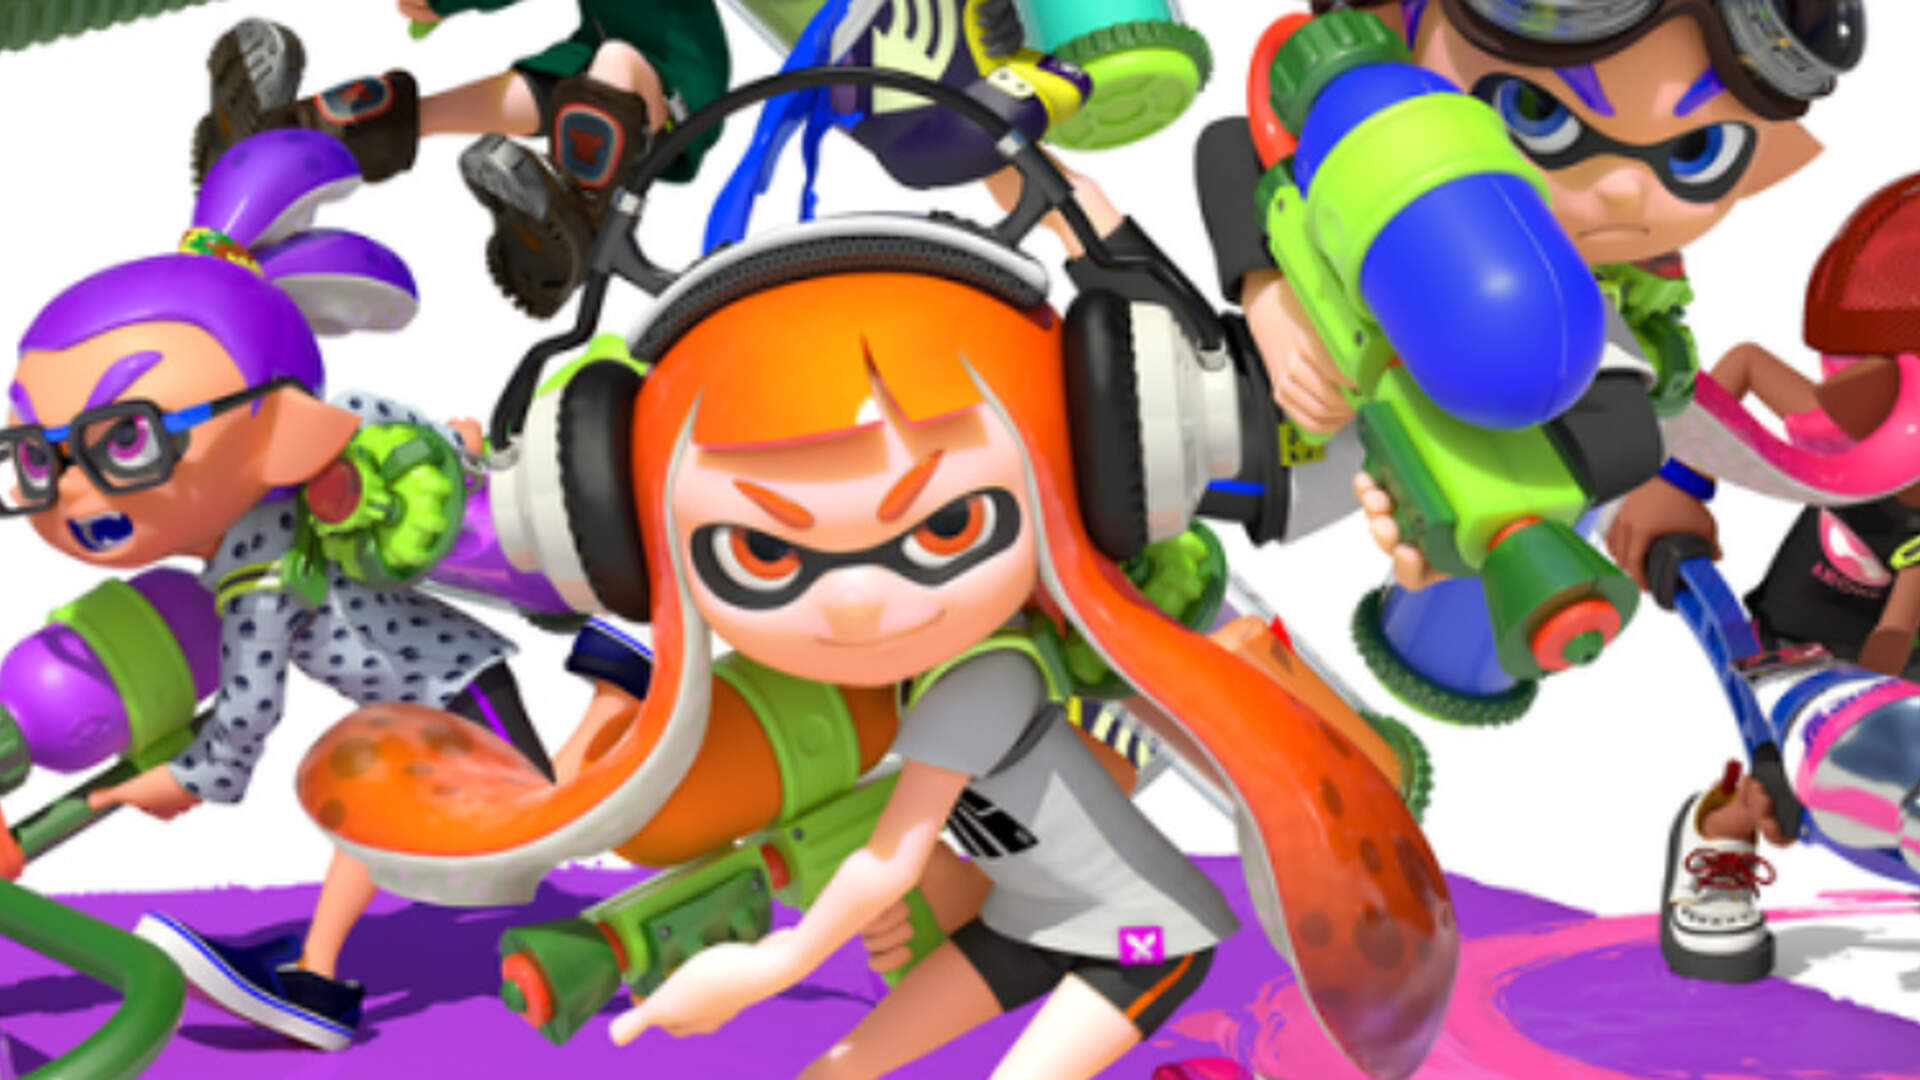 Playboy's Splatoon Video Is Coverage, Not Marketing (and a Few Real Marketing Missteps)